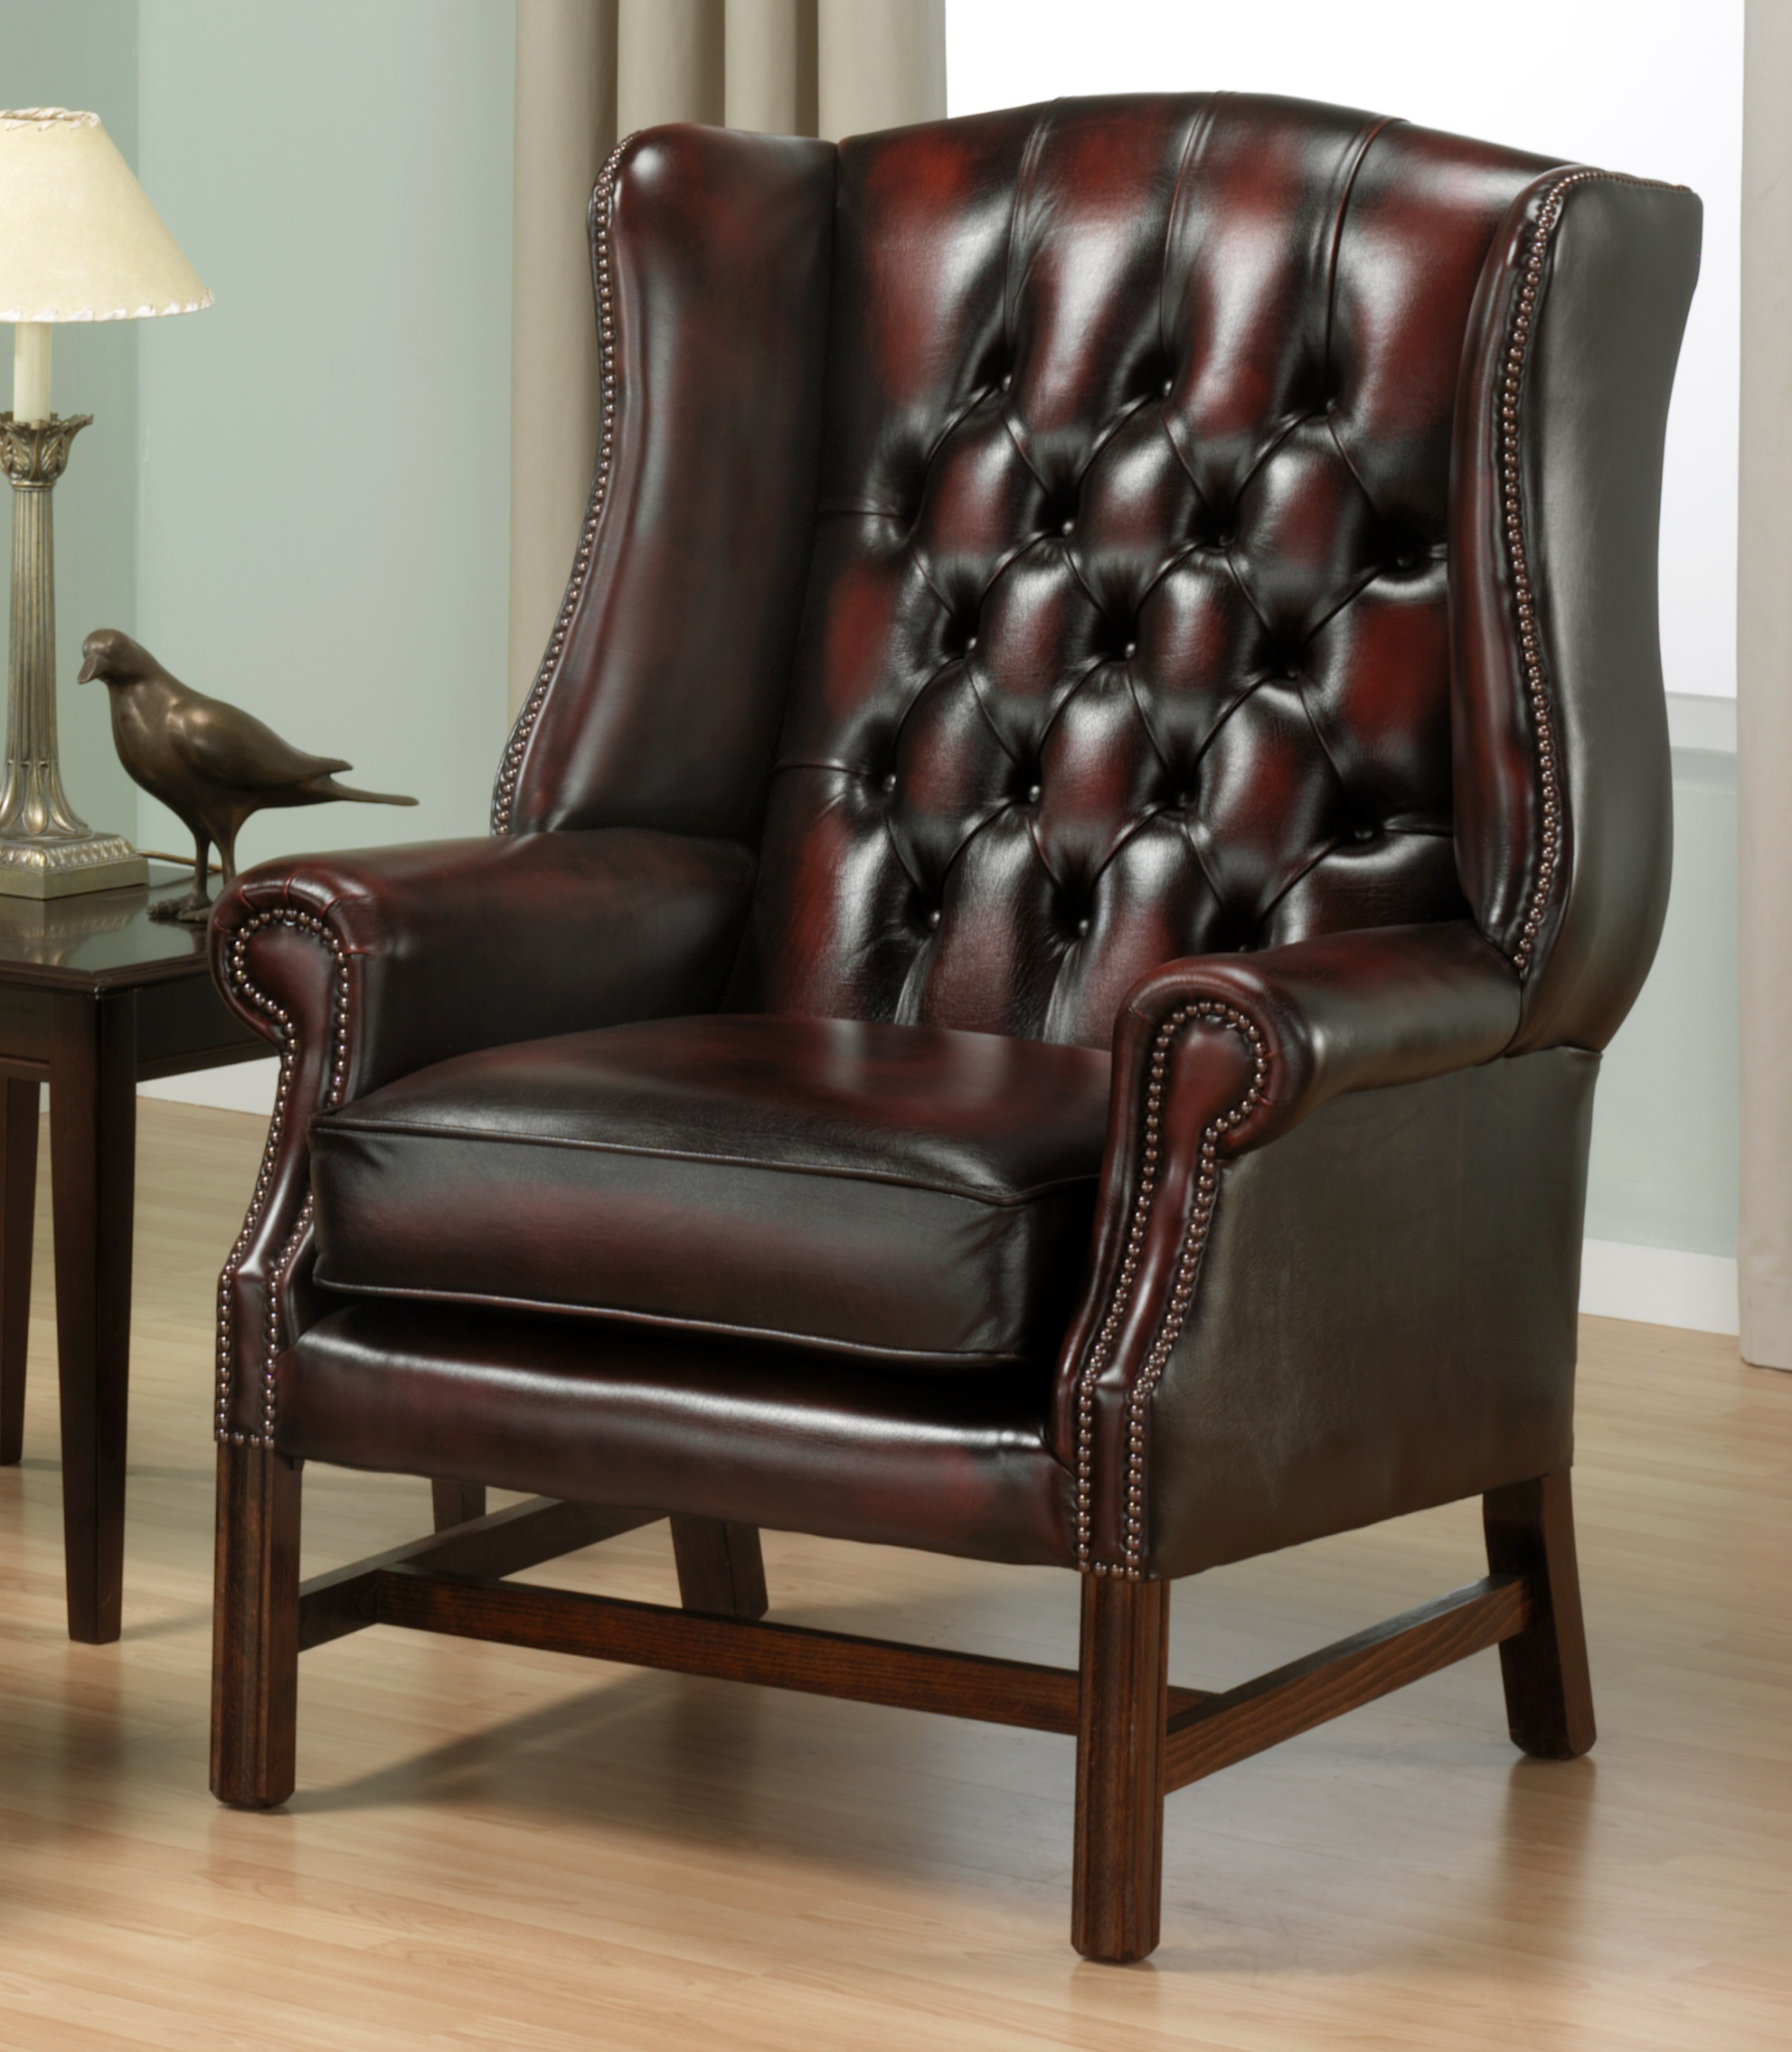 Georgian high back wing chair English Chesterfields